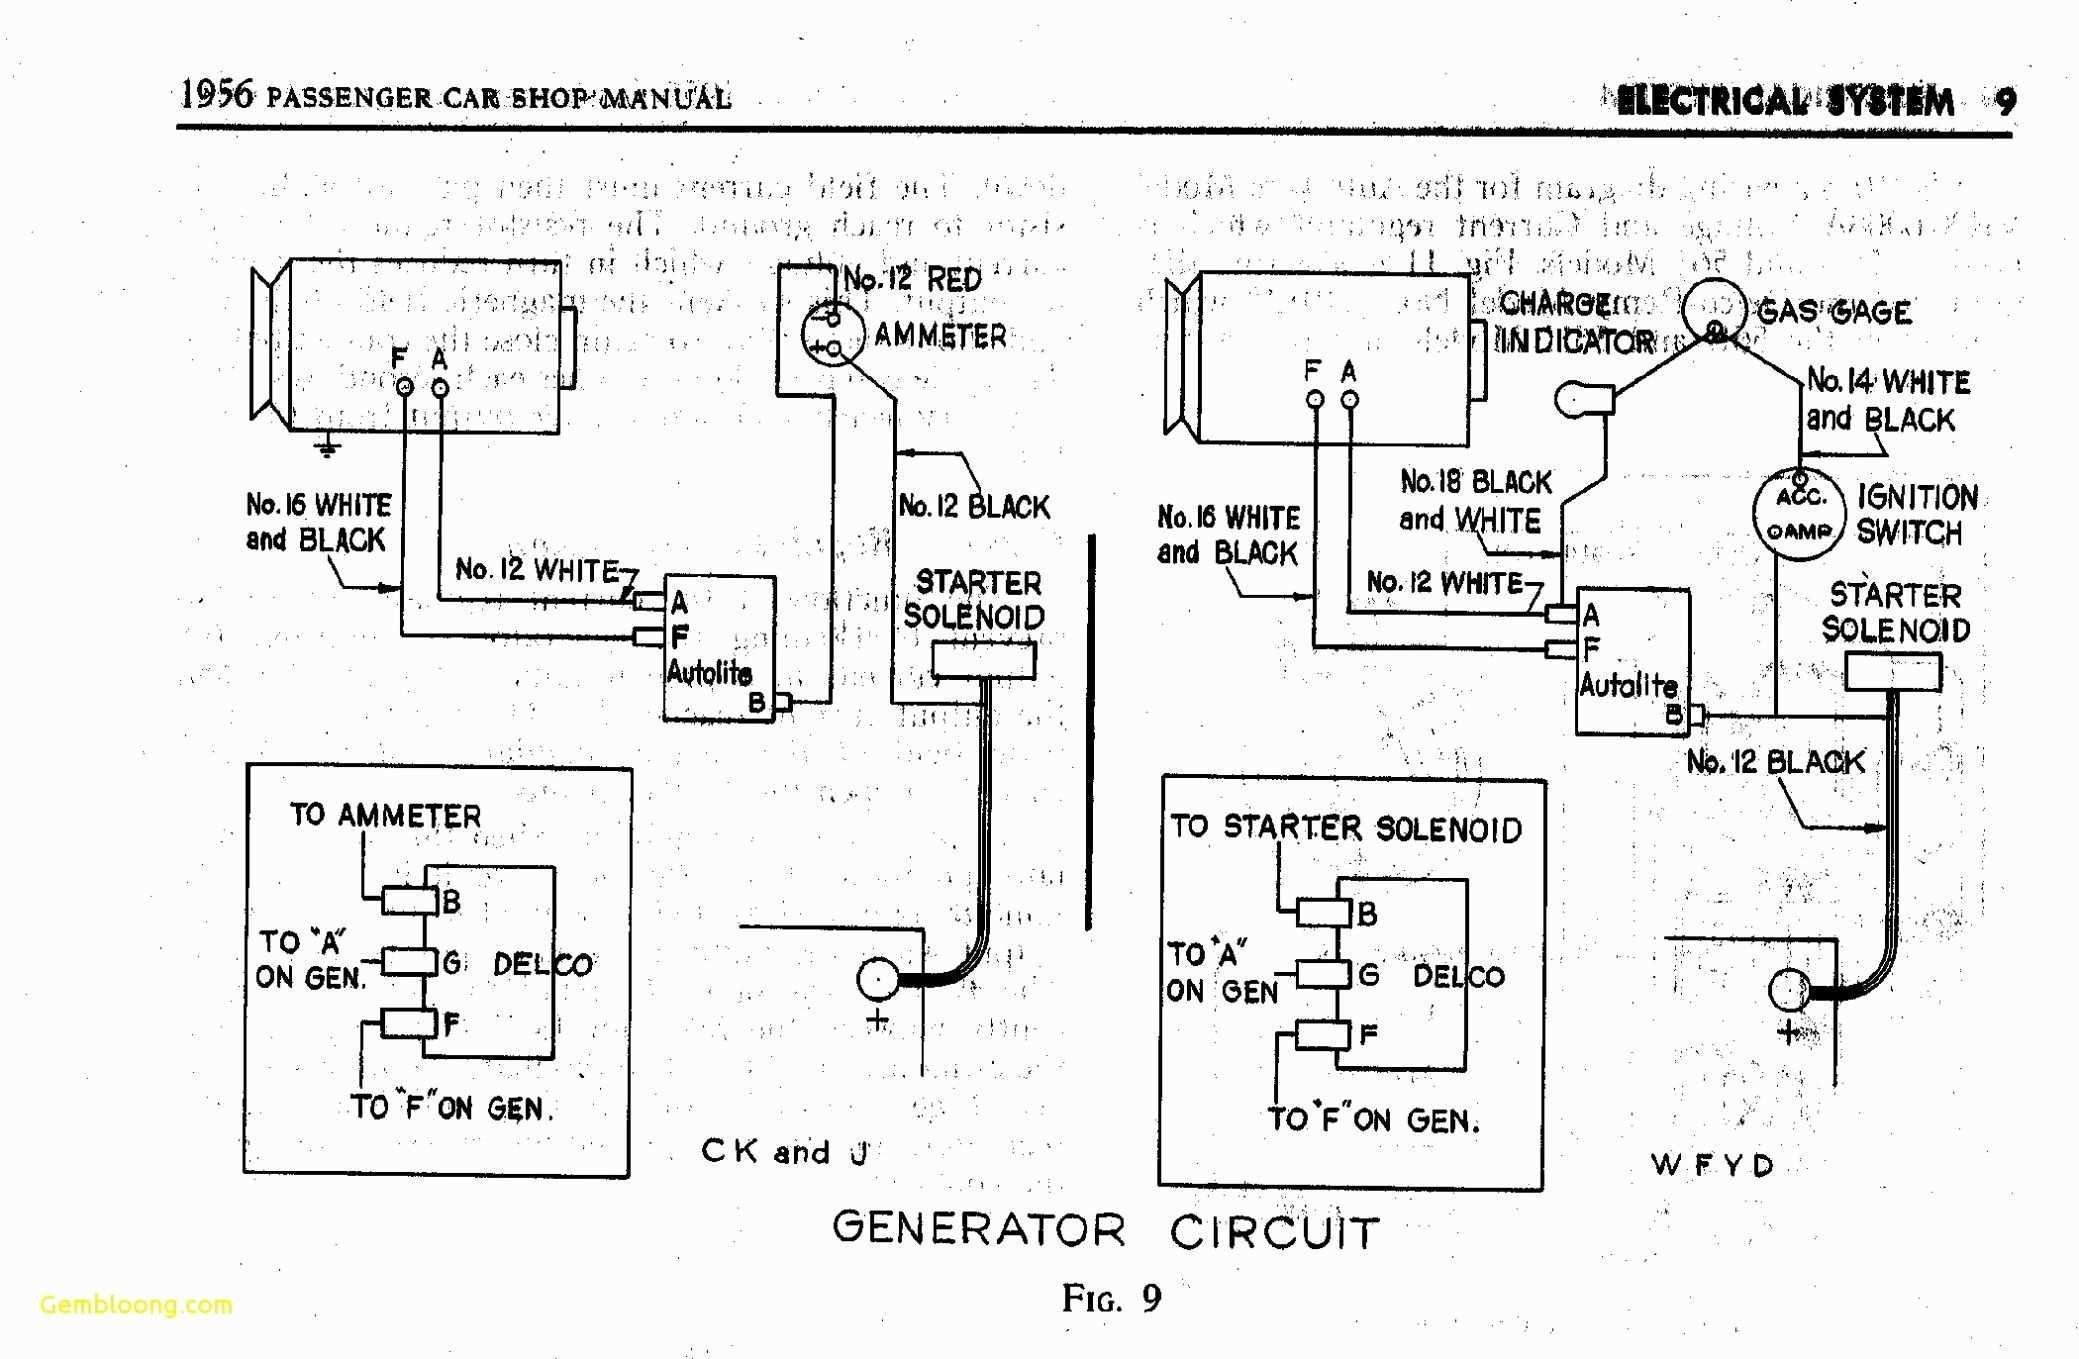 New Perkins Generator Wiring Diagram With Images